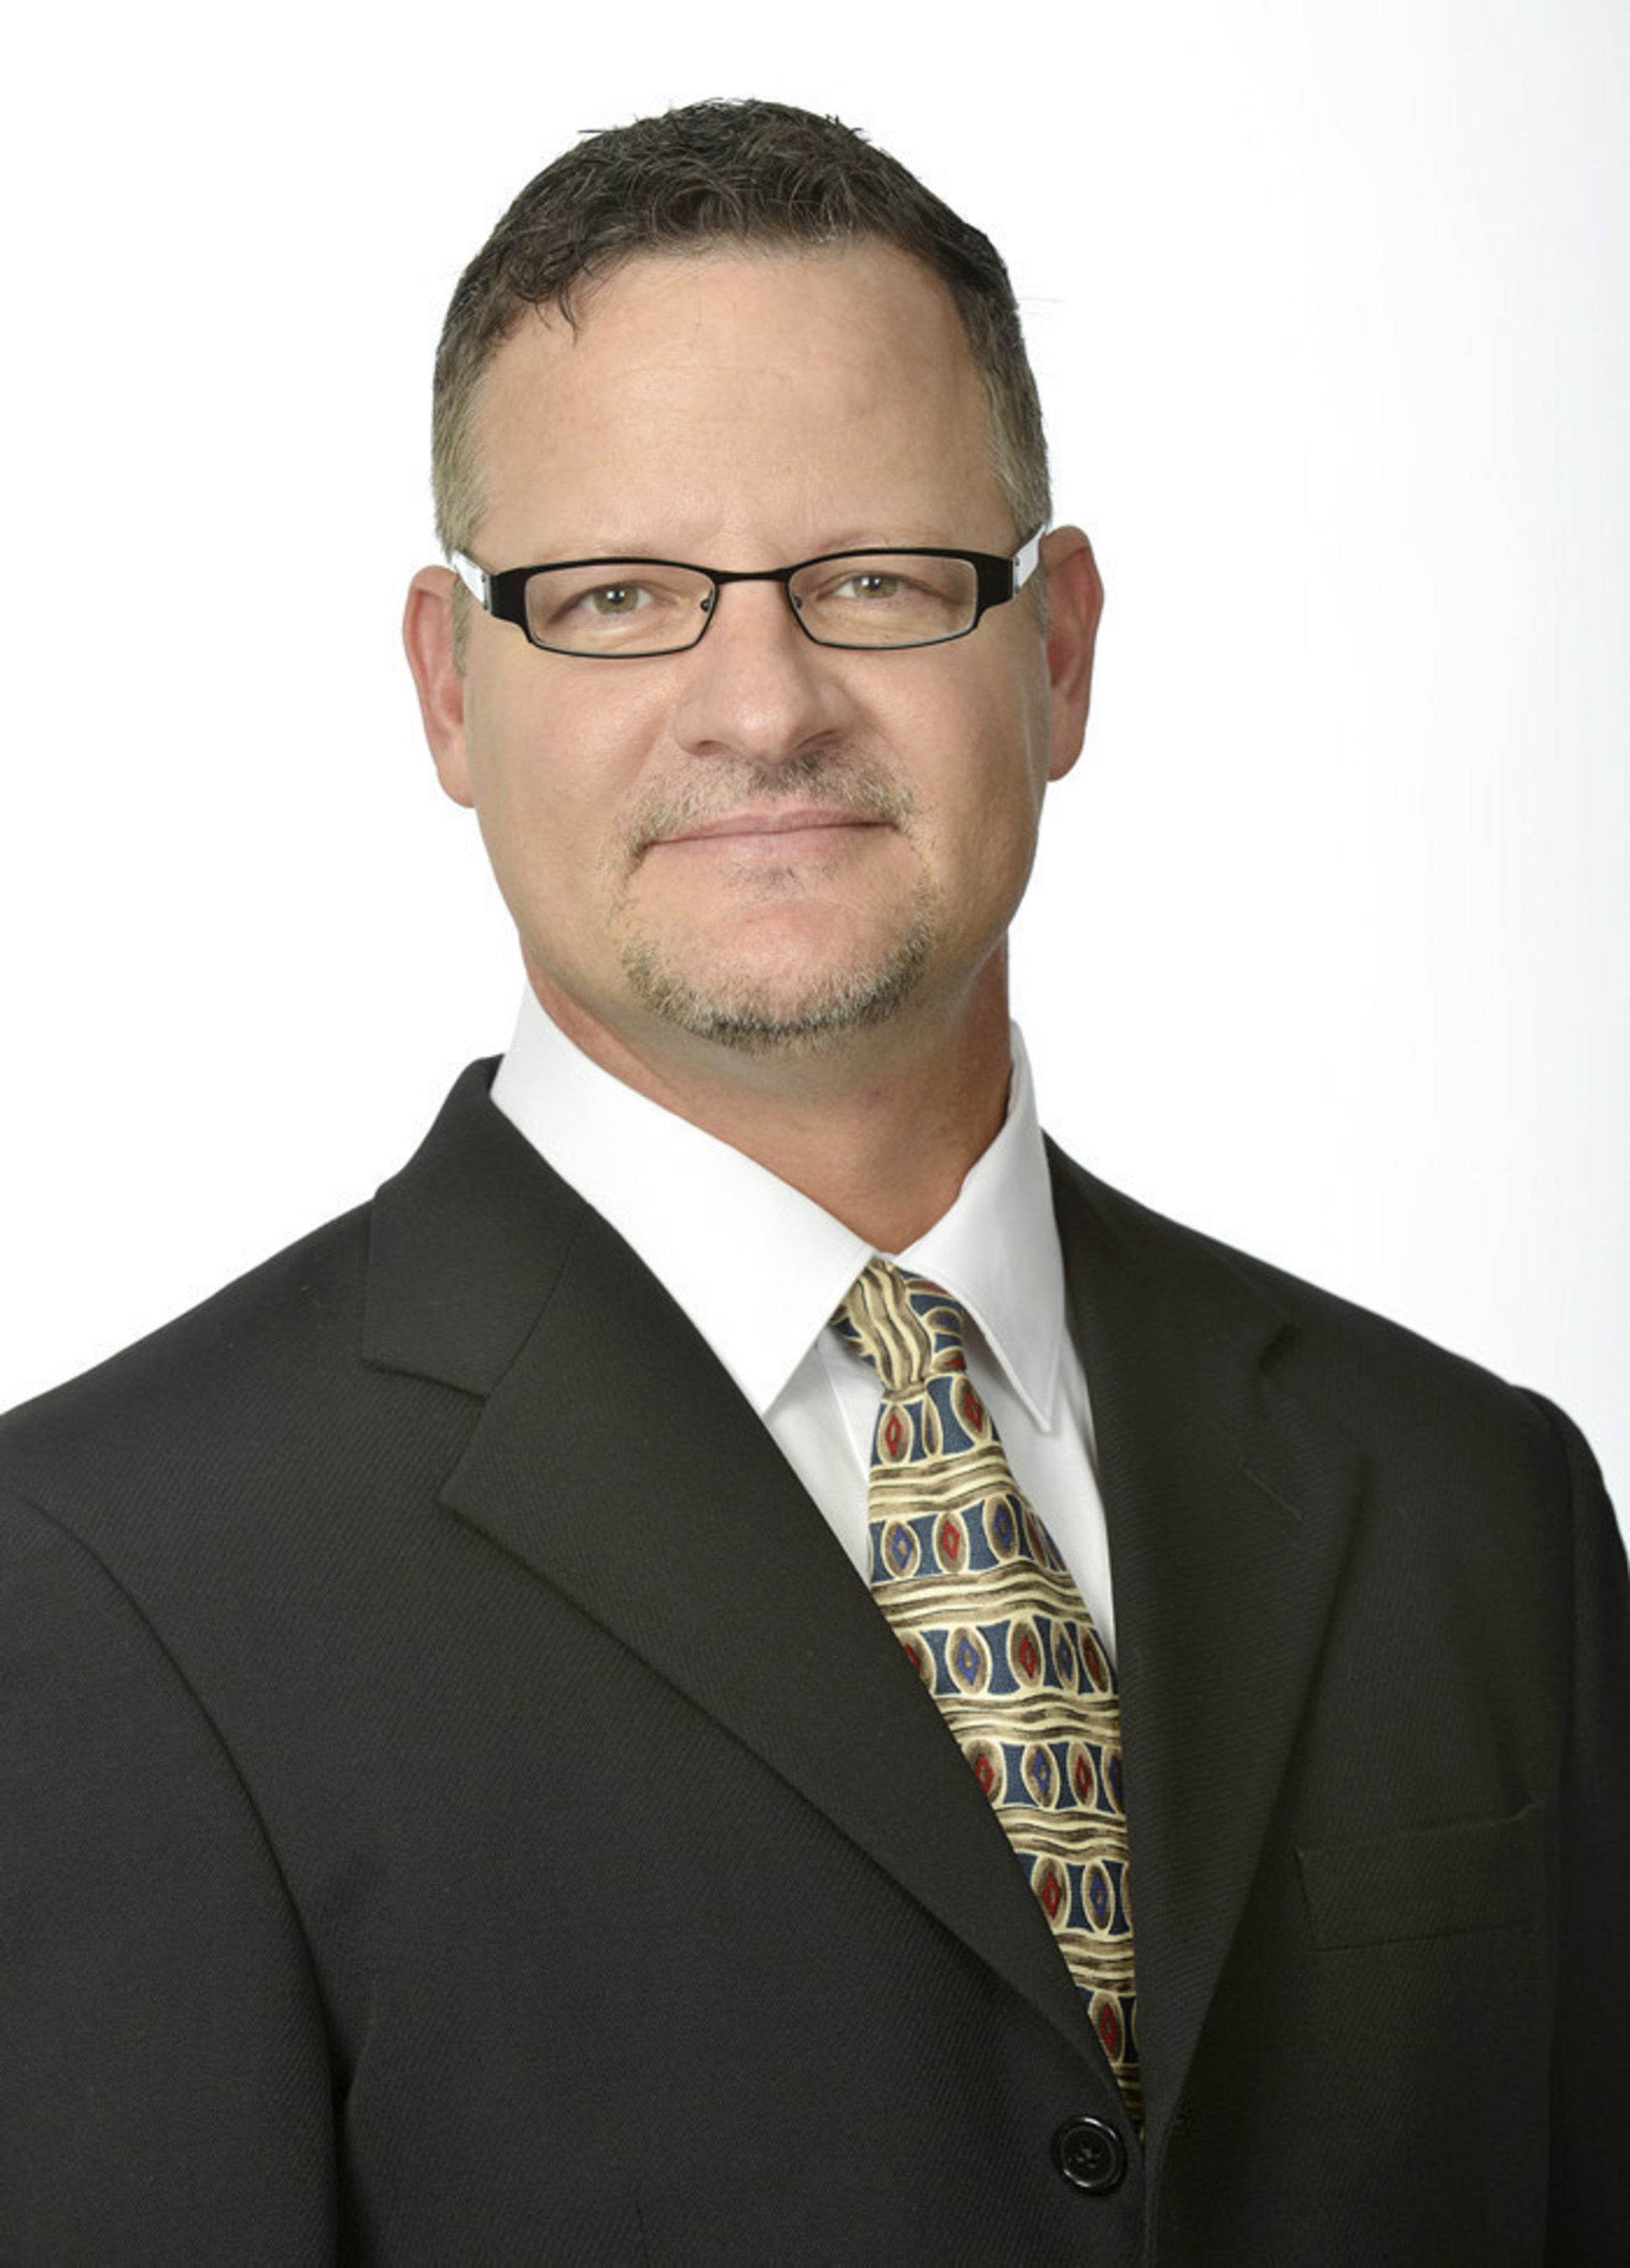 Financial Wholesaling Industry Veteran Marketer to Join Asset Marketing Systems